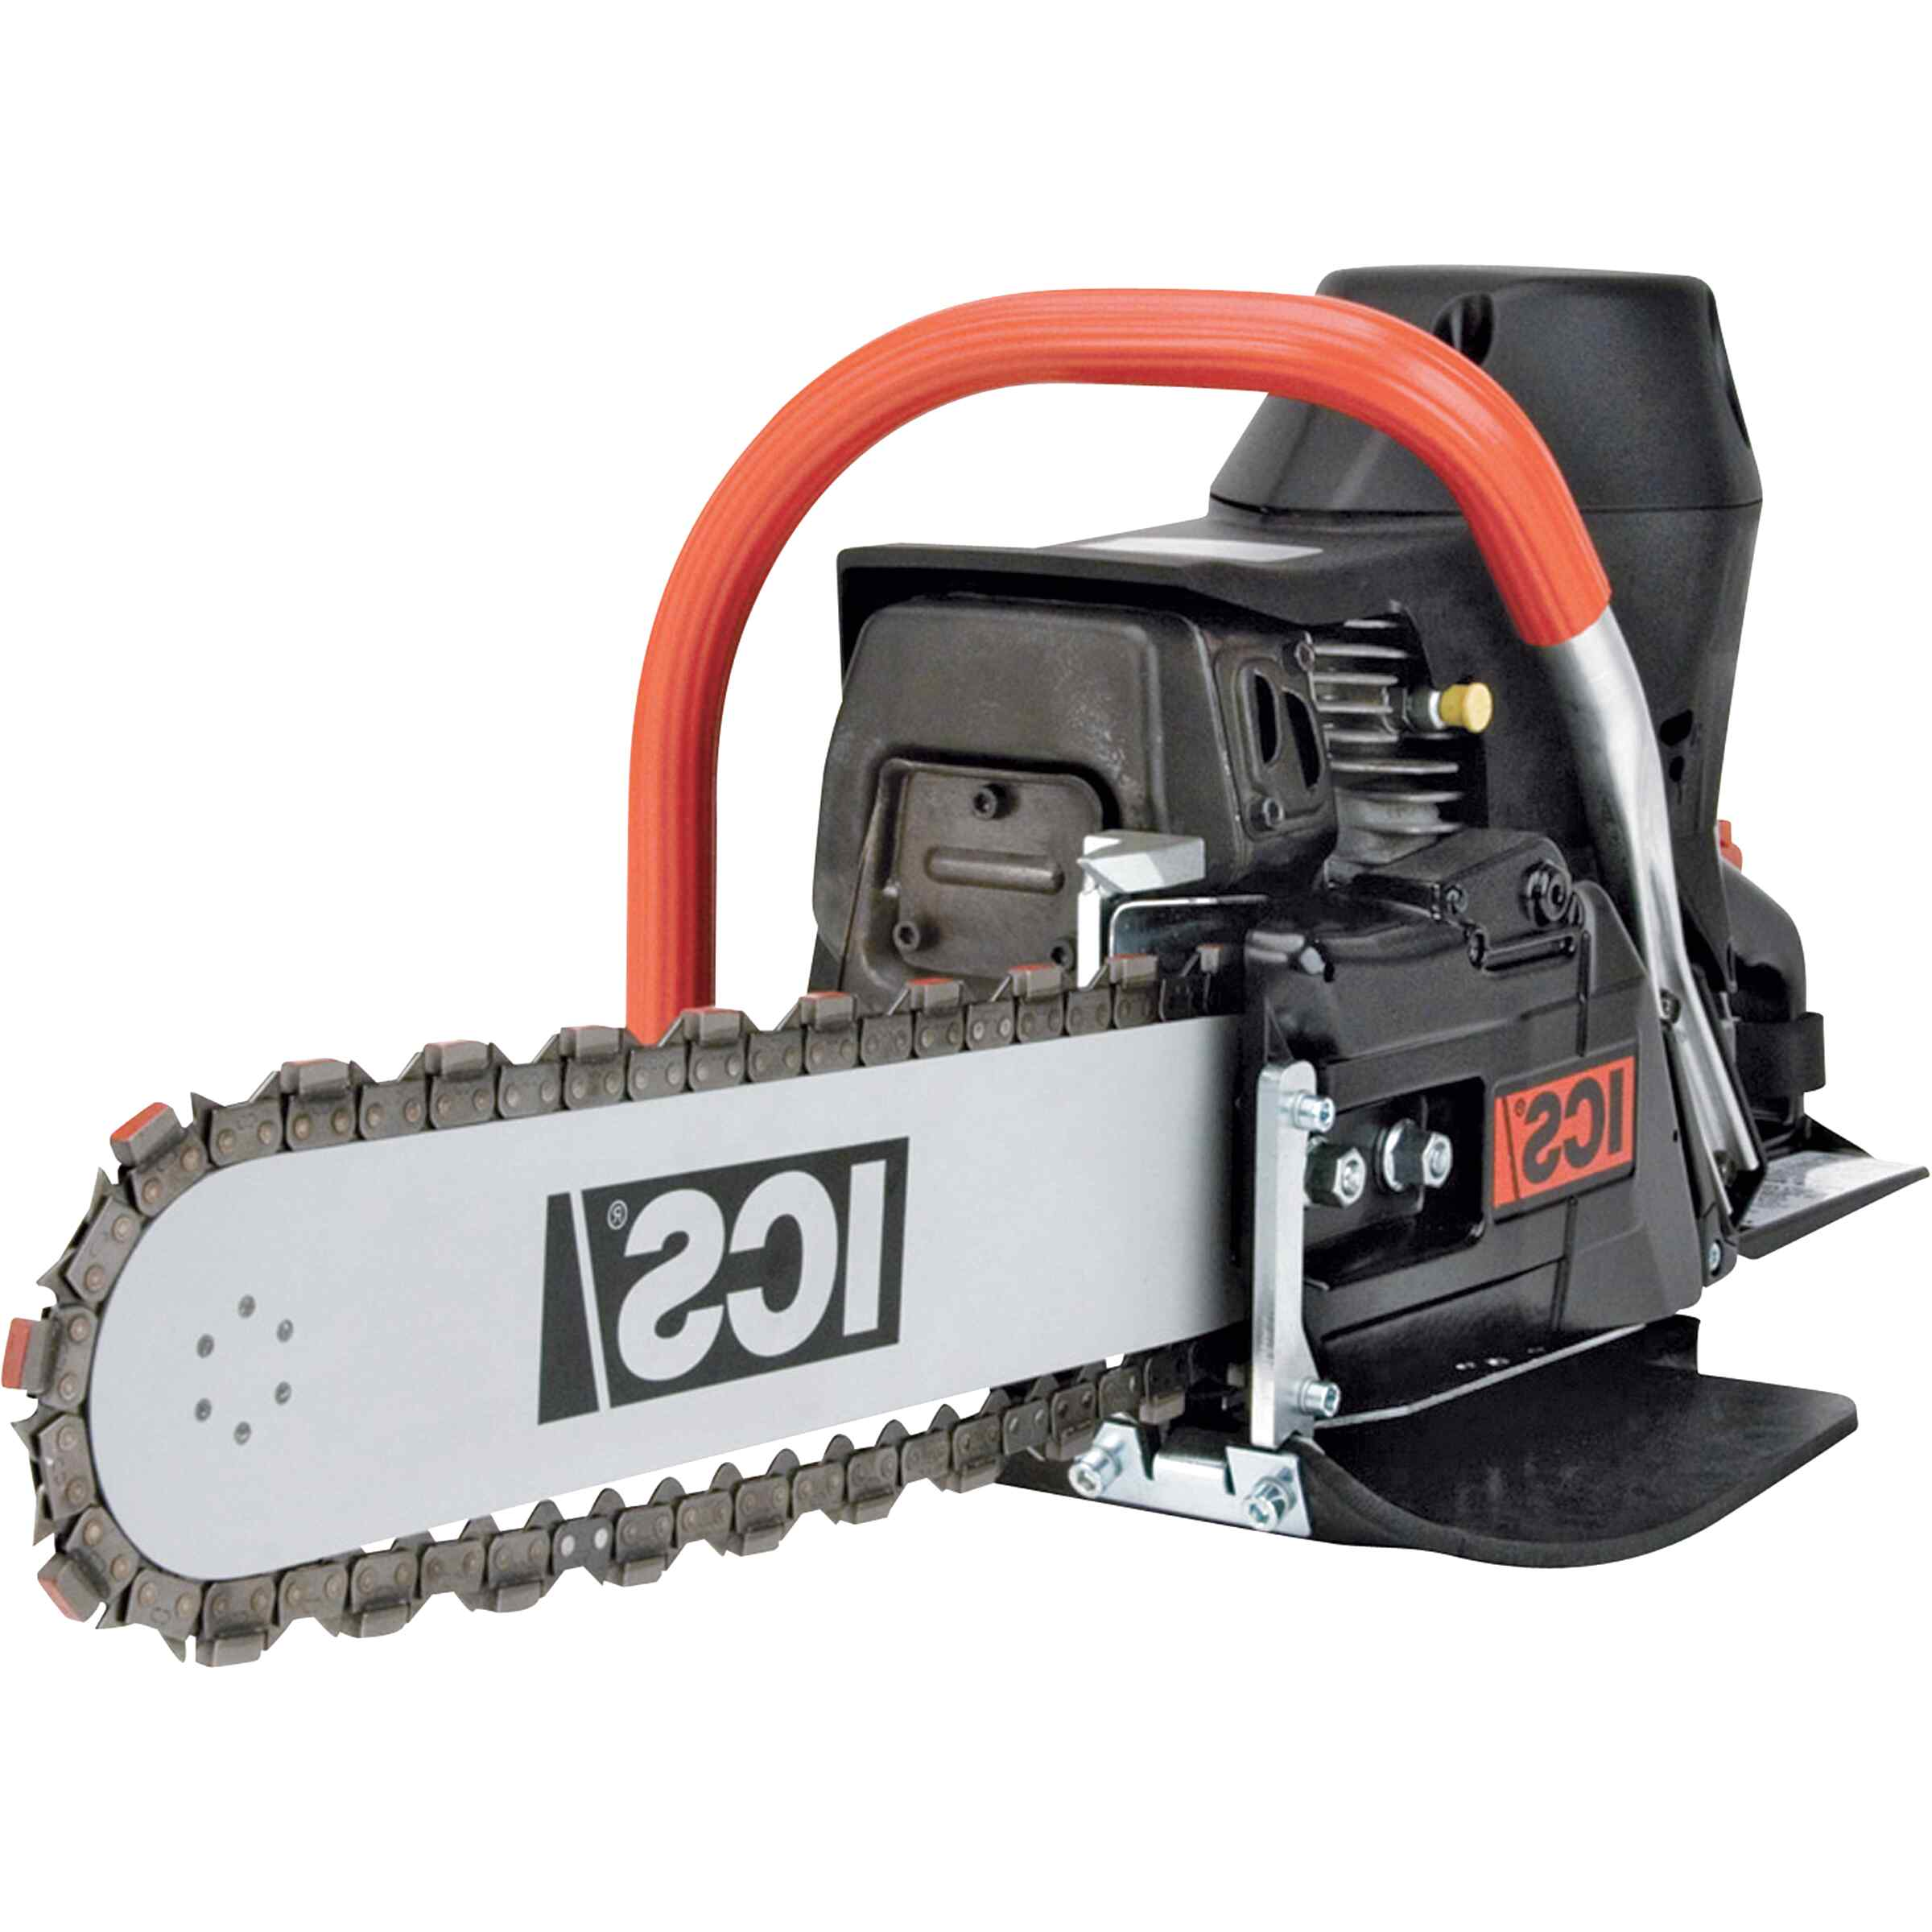 ics concrete chainsaw for sale